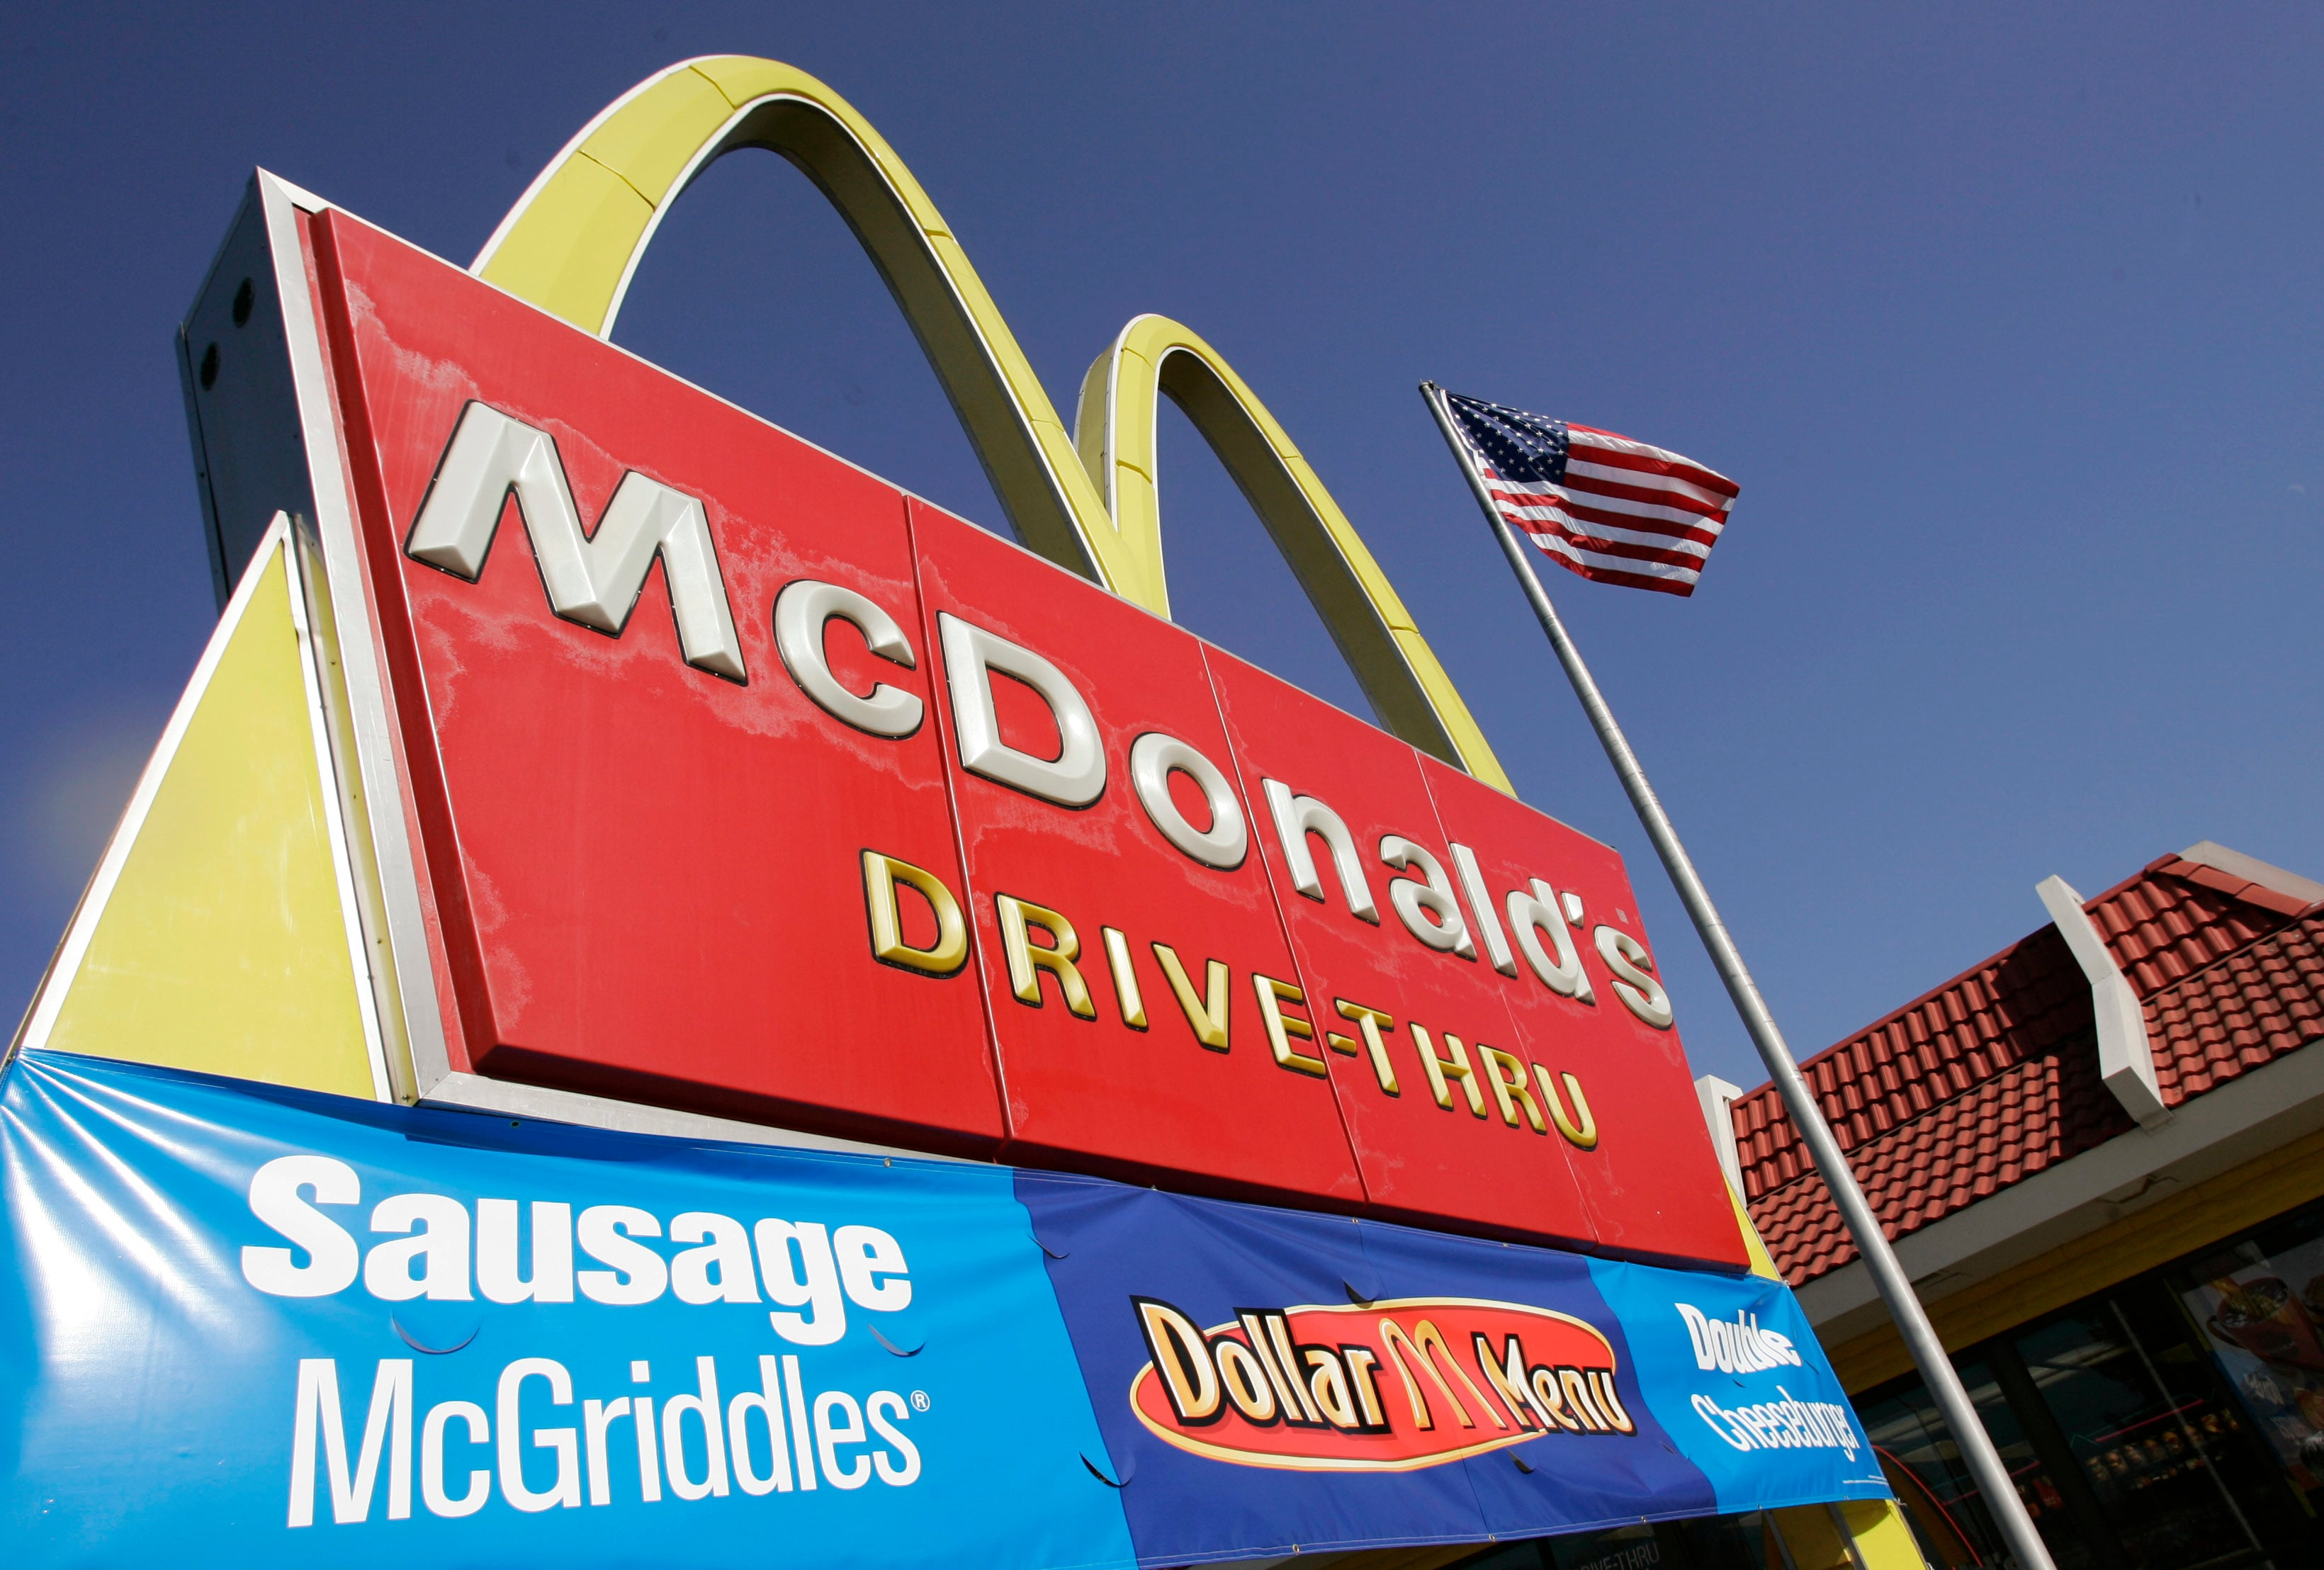 McDonald's employees describe a culture of sexual harassment